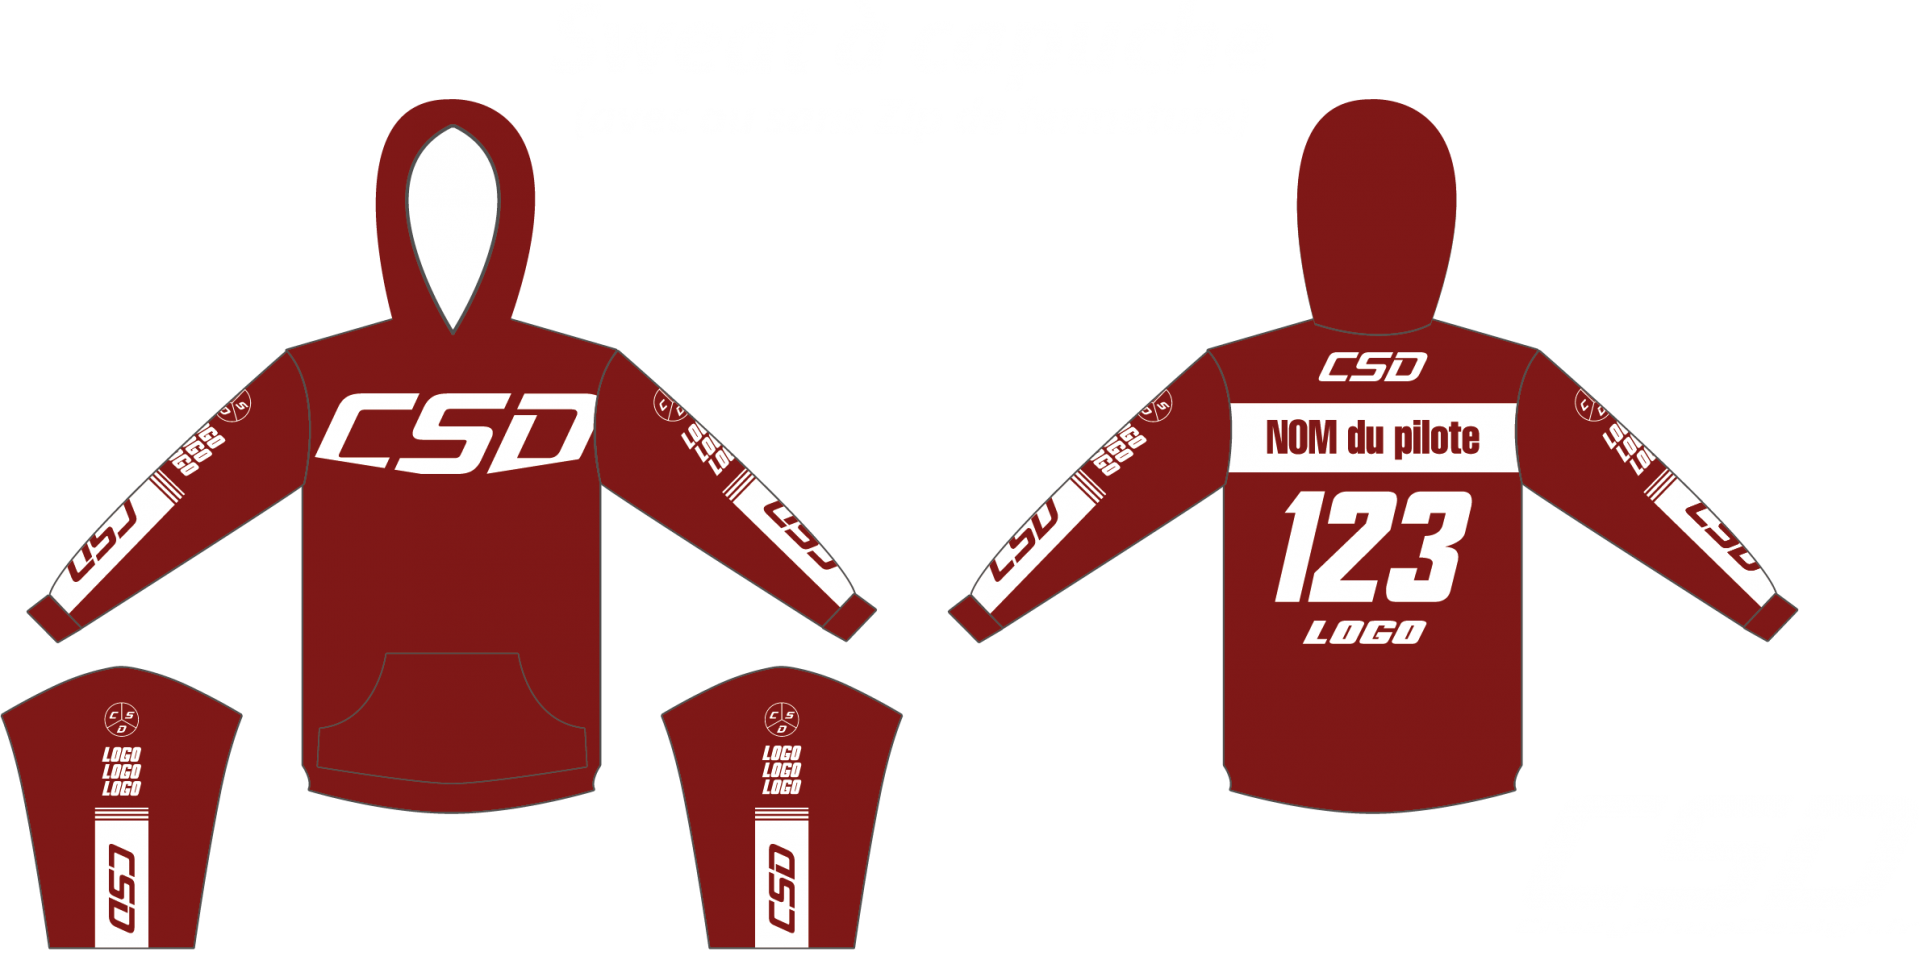 Sweat csd bordeau blanc